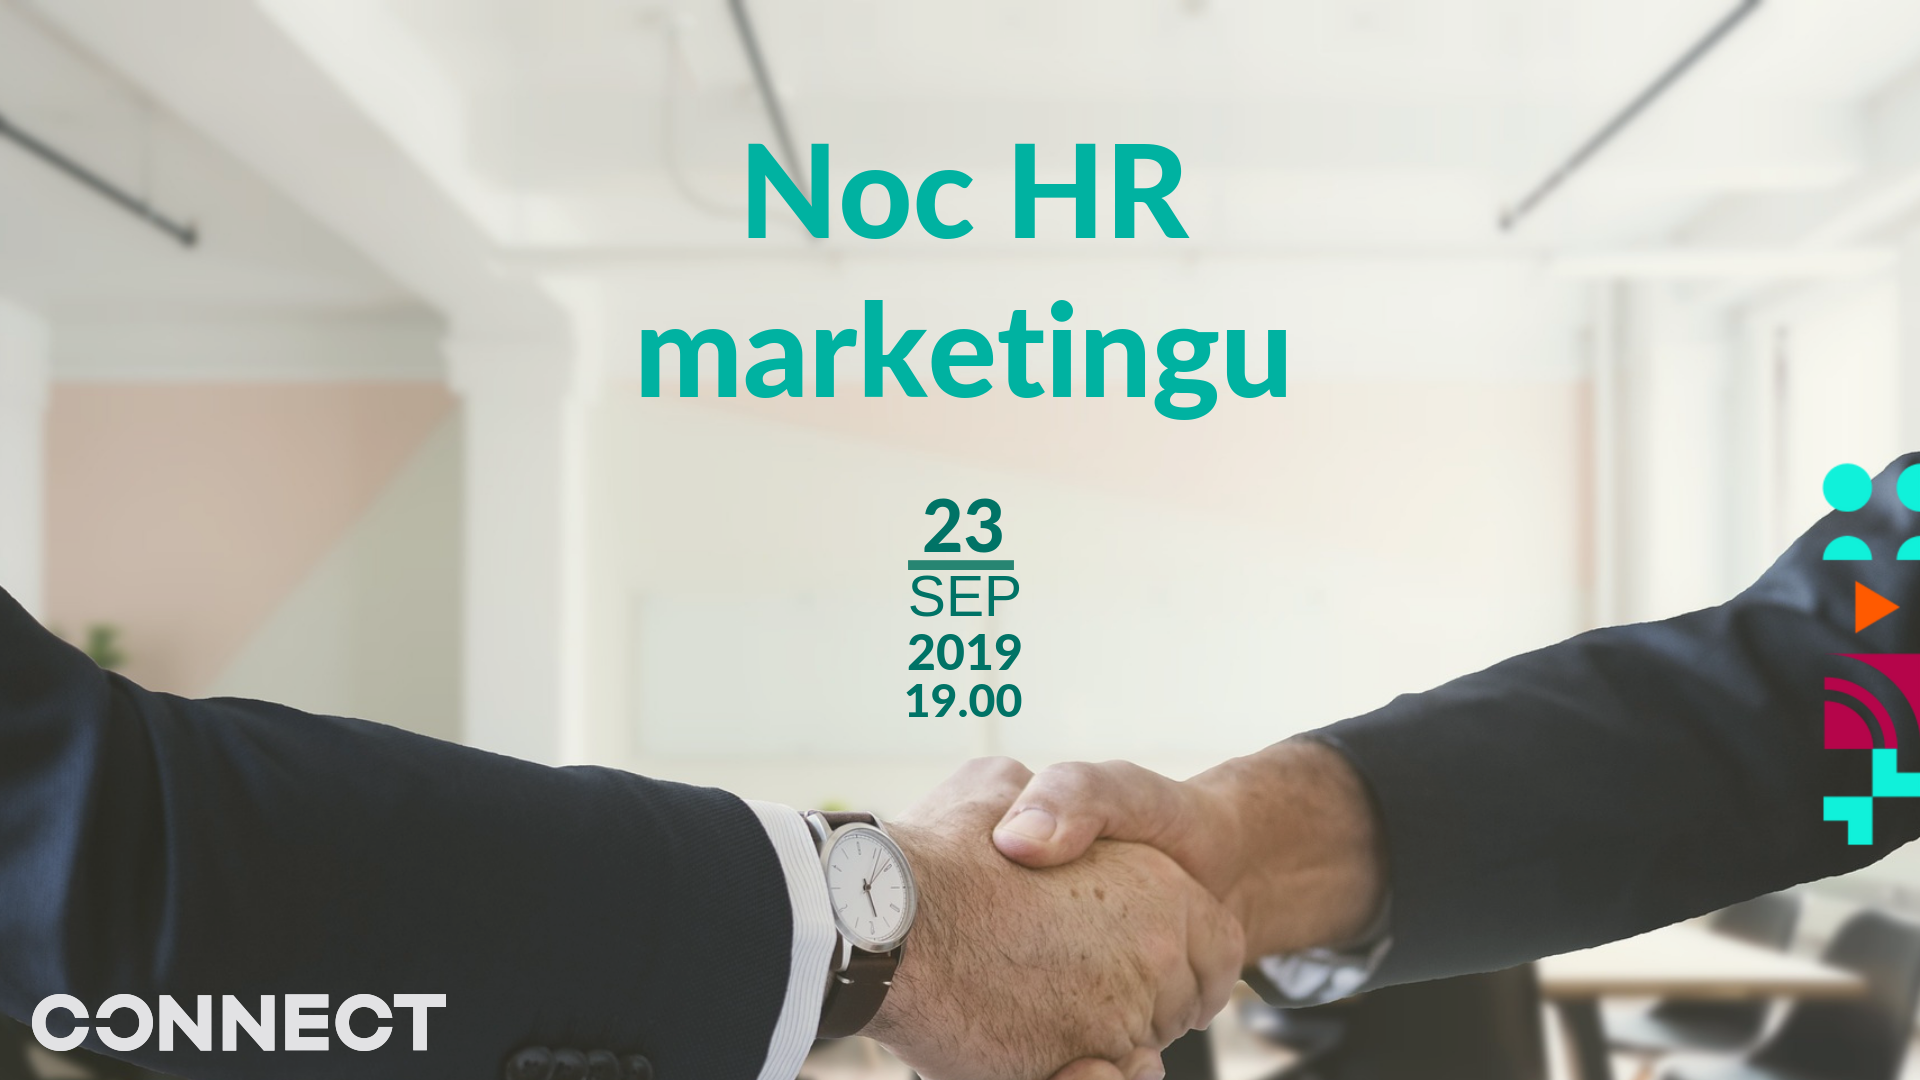 Noc HR marketingu / 23.9.2019